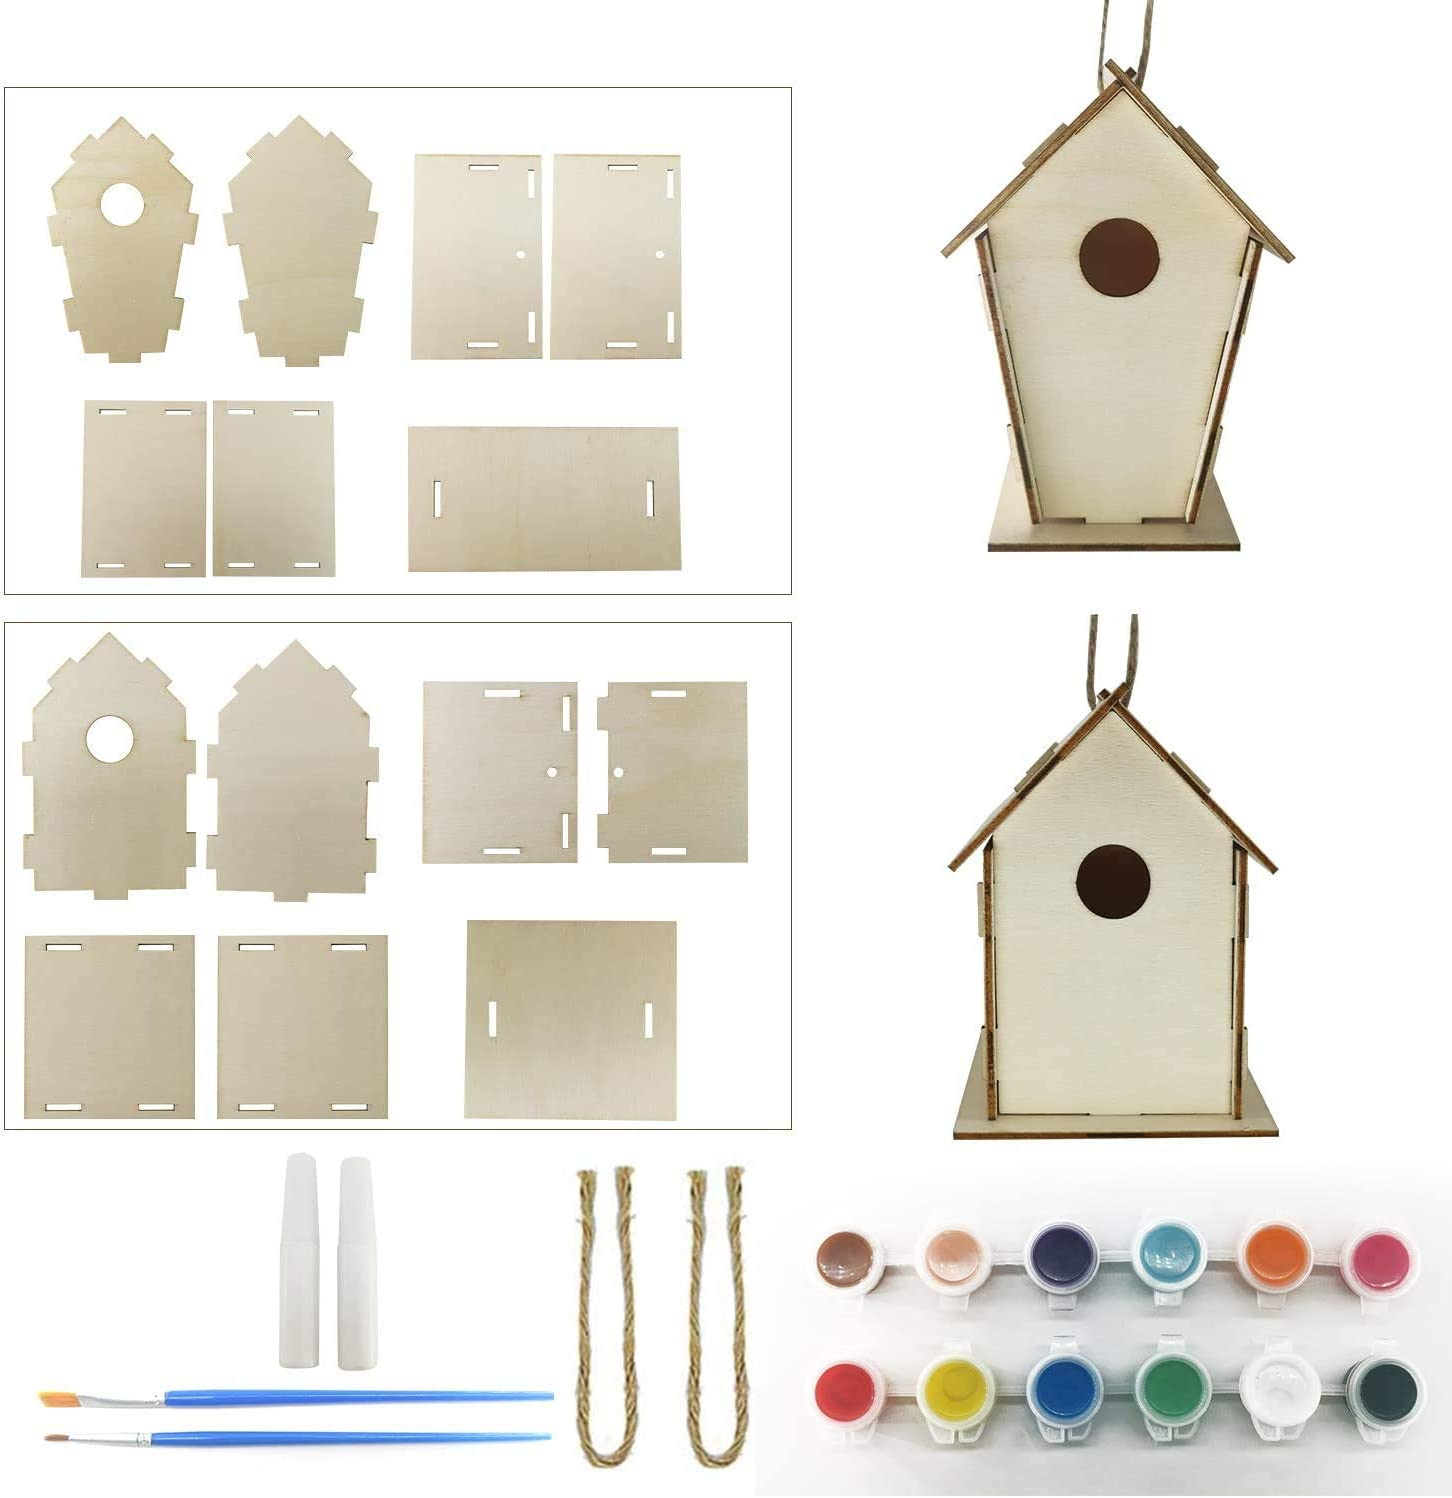 2 Pack DIY Bird House Kit -Easy to Assemble Activity Sets for Children- Design Your Own Wooden Birdhouses Includes Paints /& Brushes Build and Paint Birdhouse FEAYEA Crafts for Kids Ages 4-10